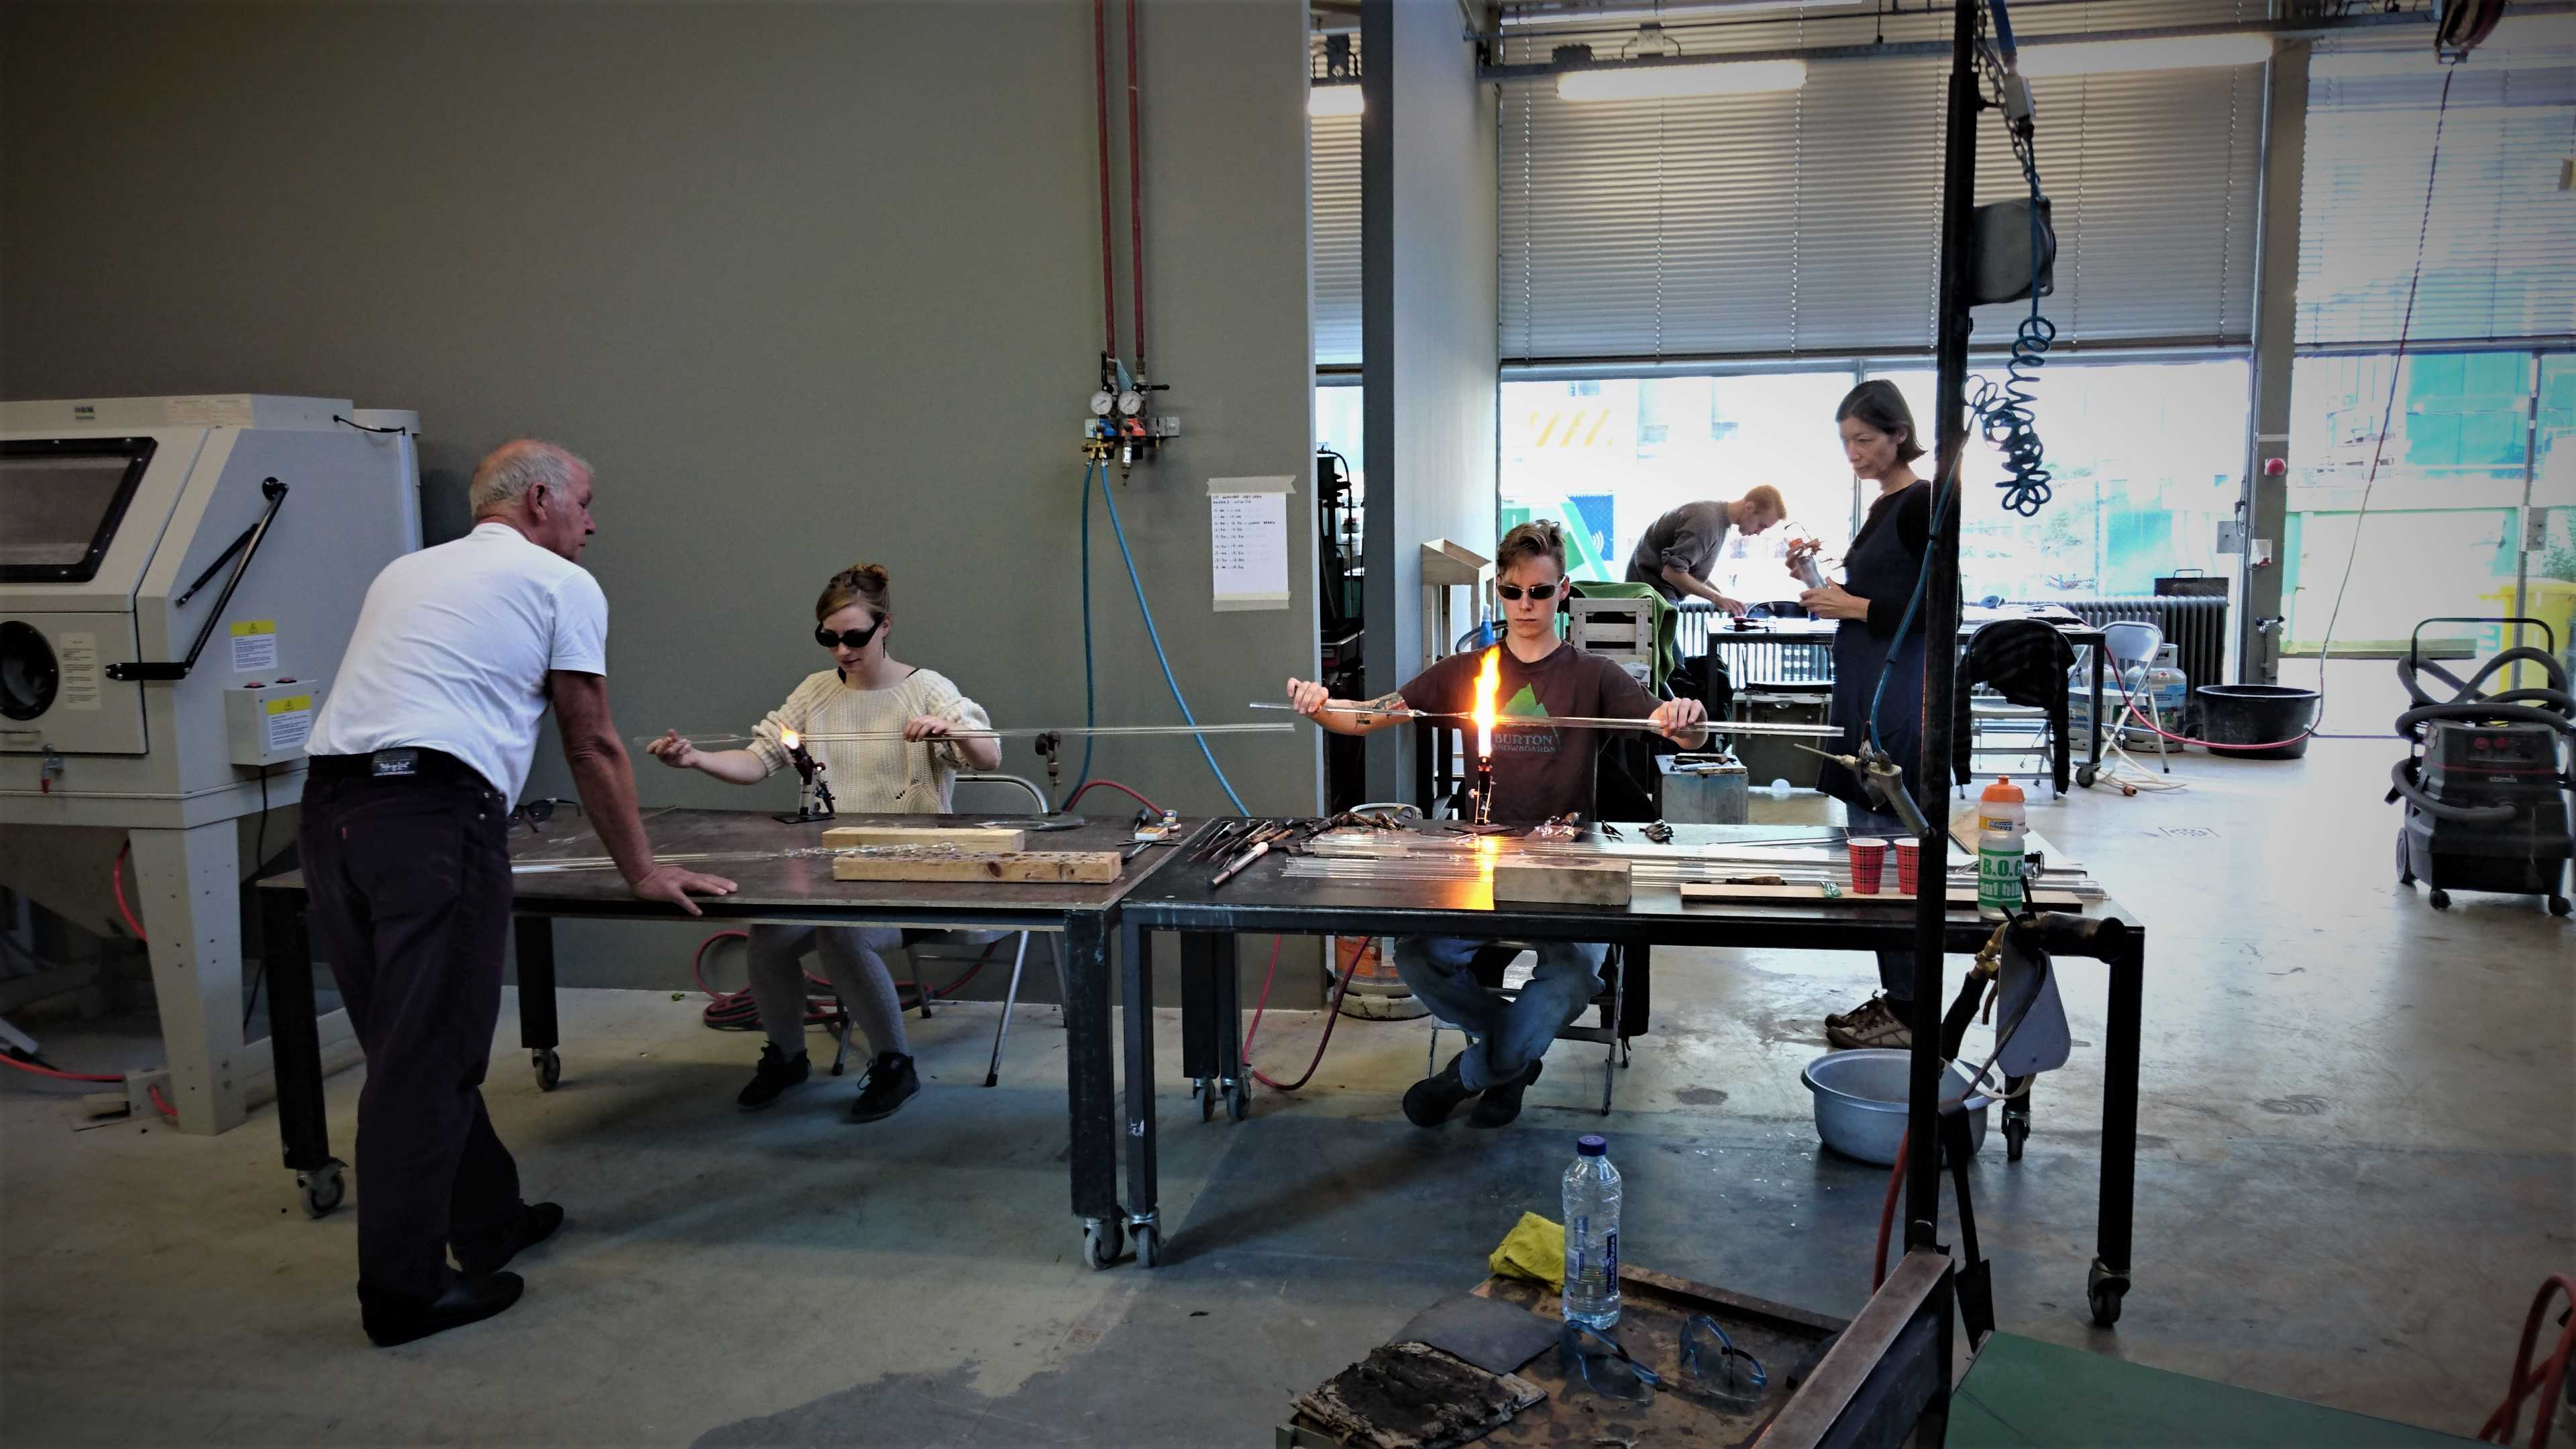 Rietveld Lampen Nl : Workshop lamp working by cees laan gerrit rietveld academie